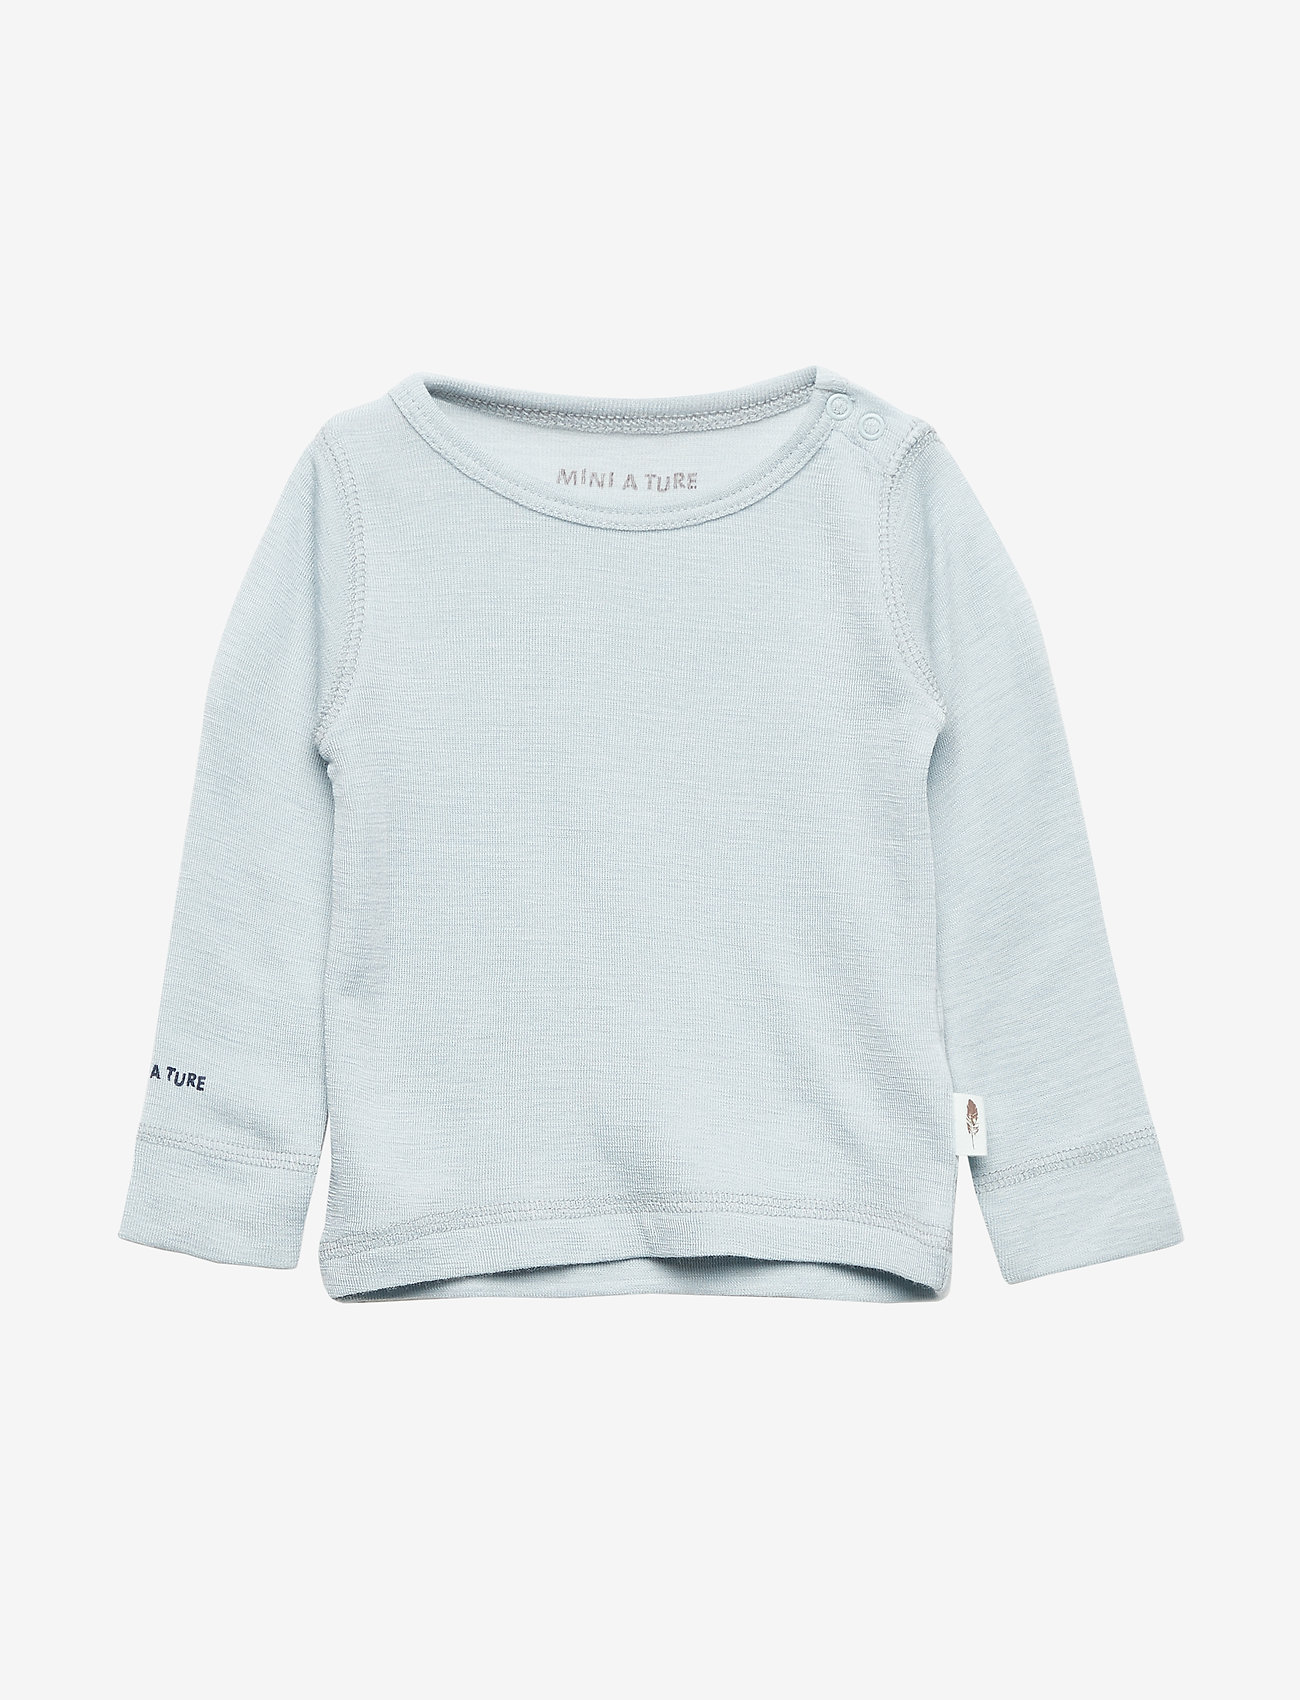 Mini A Ture - Erion T-shirt, MK - lange mouwen - baby blue - 0